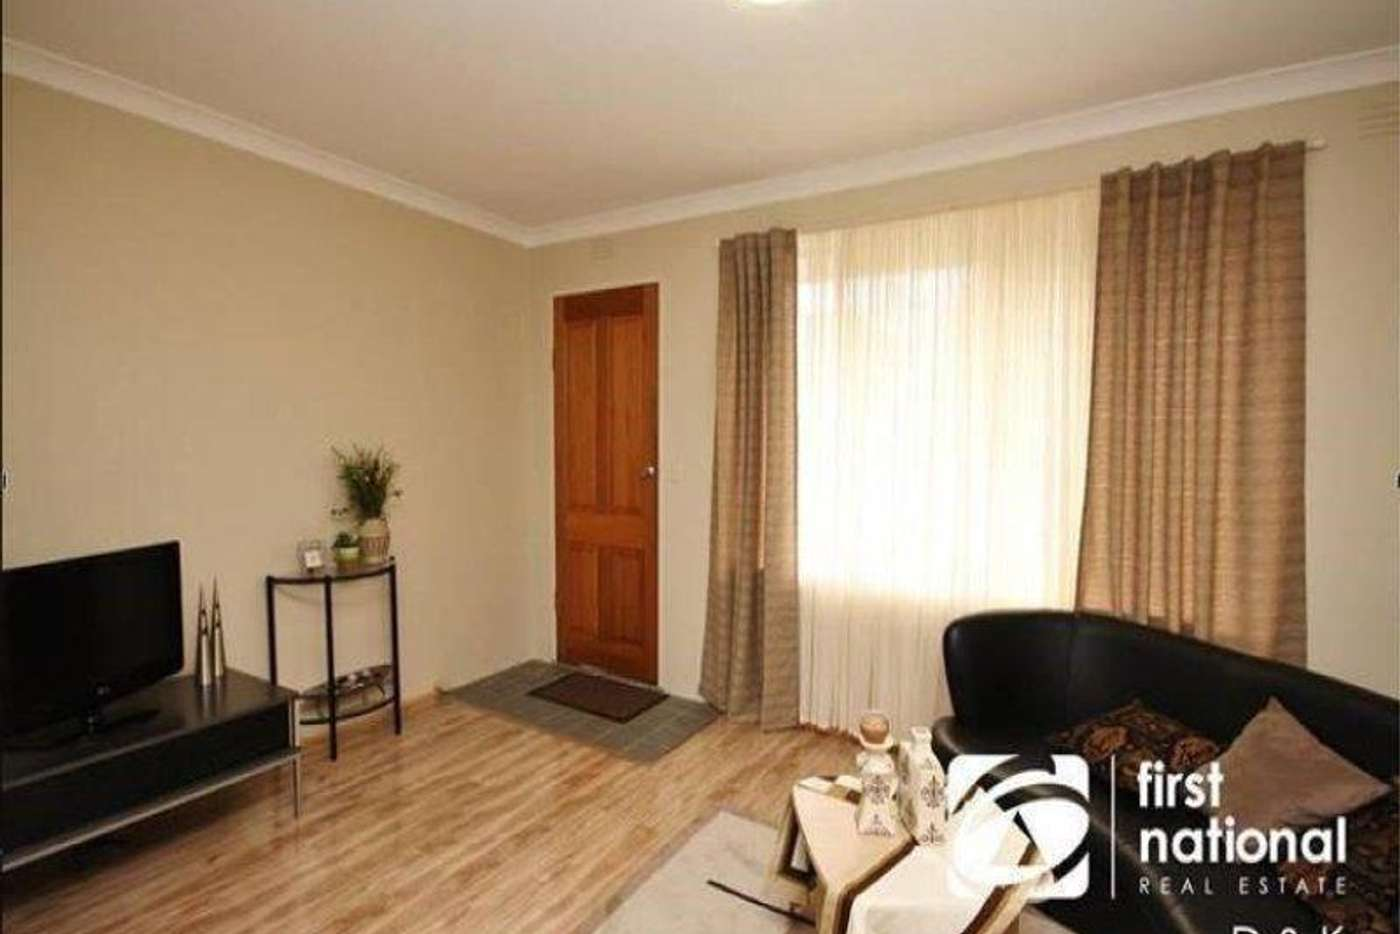 Main view of Homely unit listing, 10/98 Rupert Street, West Footscray VIC 3012